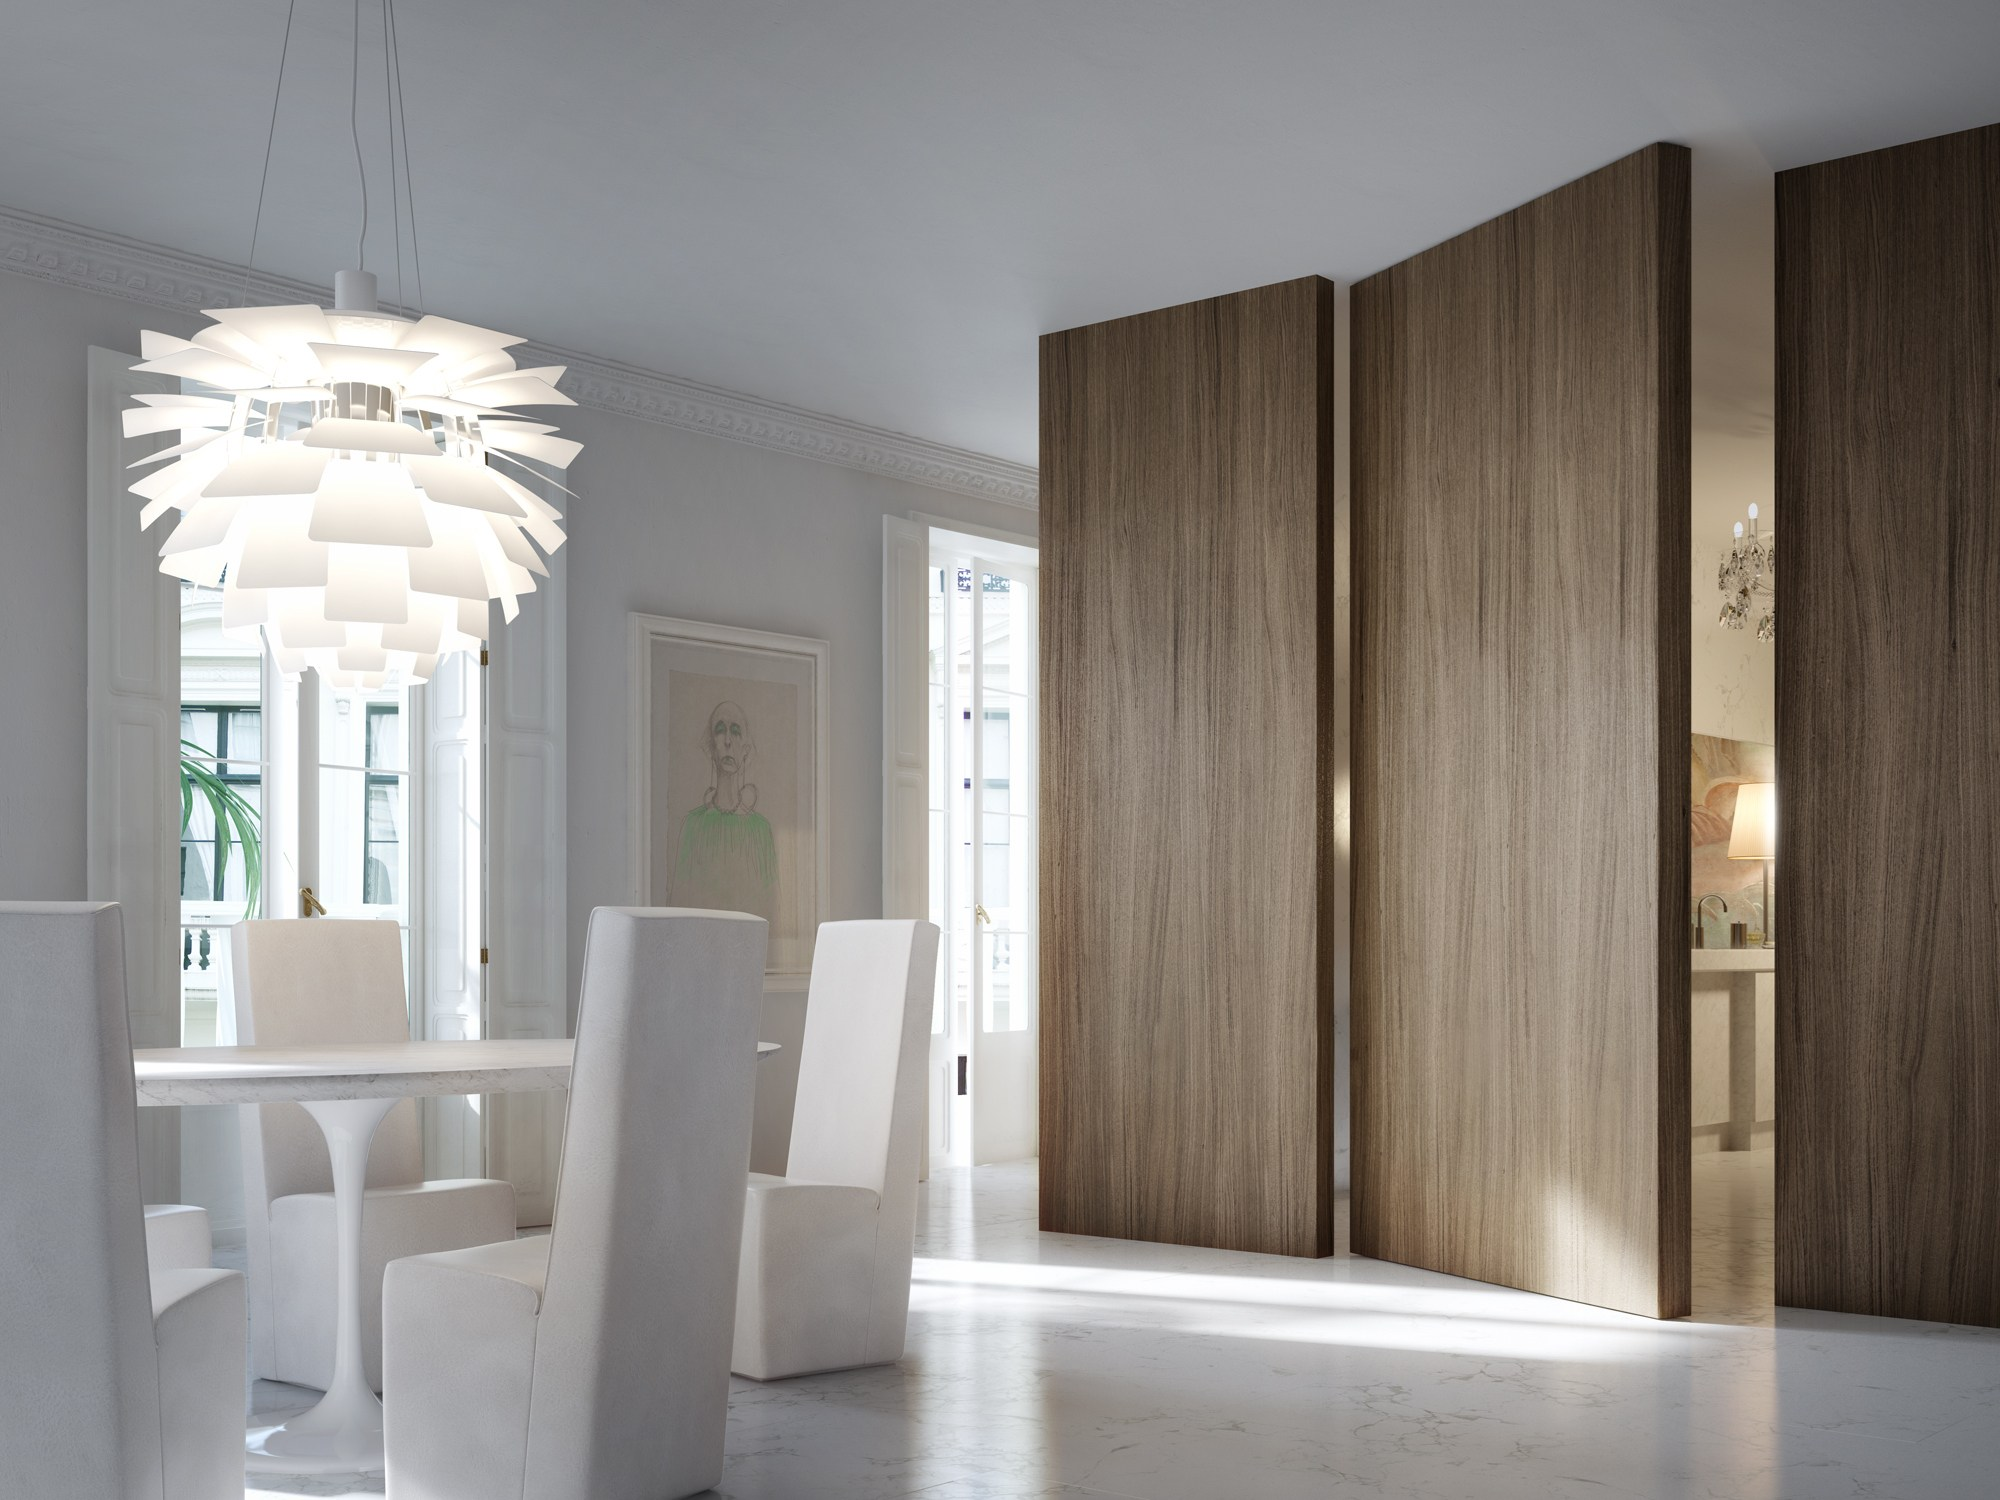 Filo 10 pivot door by linvisibile by portarredo - Puertas interiores modernas ...